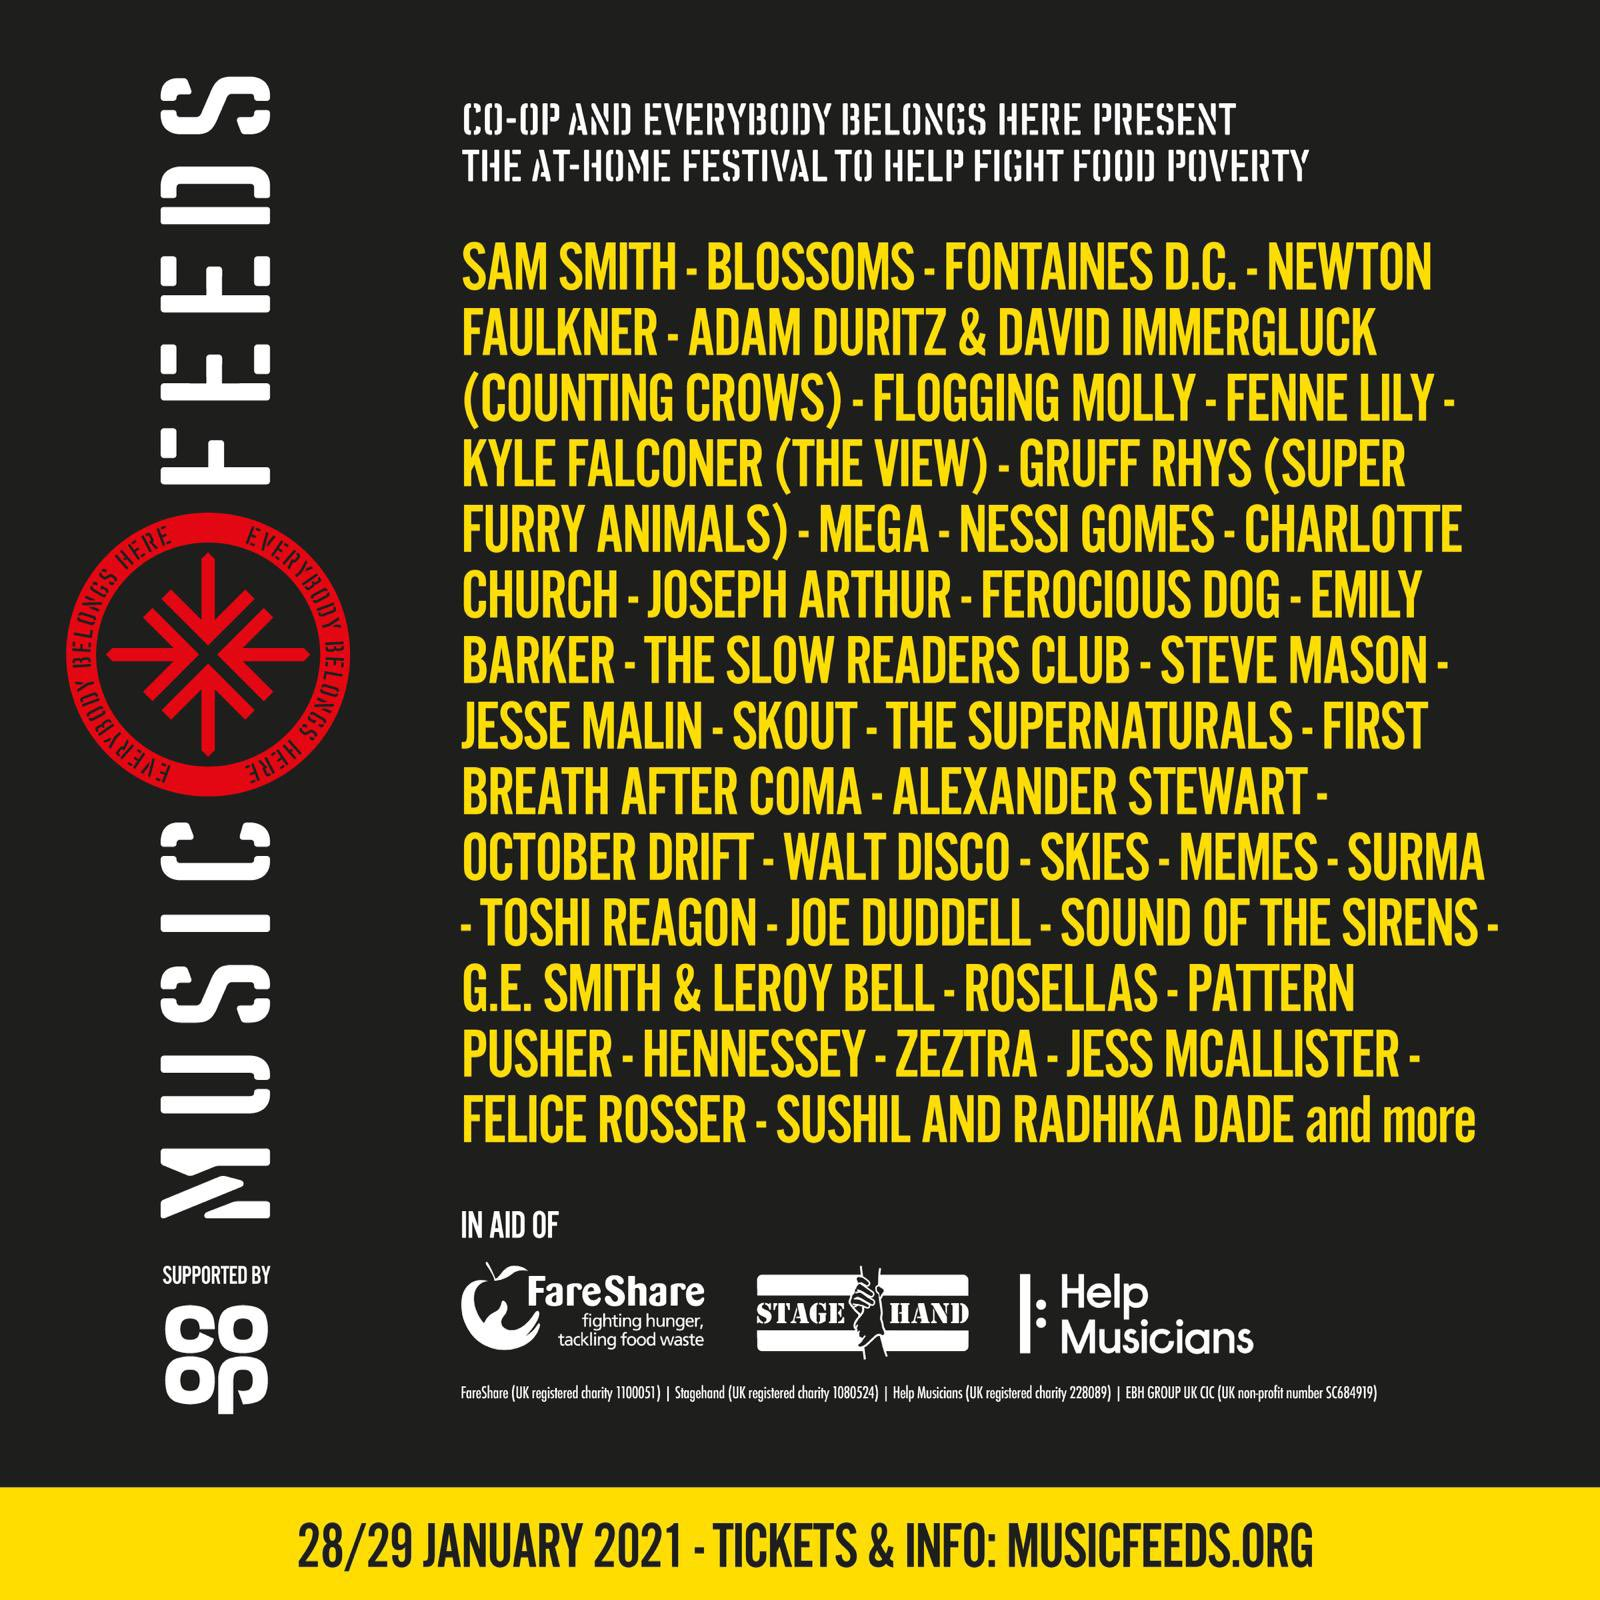 Programmation du festival Music Feeds : Same Smith · Blossoms · Fontaines D.C · Newton Faulkner · Adam Duritz & David Immergluck (Counting Crows) · ·Flogging Molly Fenne Lily · Kyle Falciner (the View) · Gruff Rhys (super Furrry Animals) · Mega · Nessi Gomes · Charlotte Church · Joesph Arthur · Ferocious Dog · Emily Barker · The Slow Readers Club · Steve Mason · Jesse Malin · Skout · The Supernaturals · First Breath After Coma · Alexander Stewart · October Drift · Walt Disco · Skies · Memes · Surma · Toshi Reagon · Joe Duddell · Sound of the Sirens · G.E Smith & Leroy Bell · Rosellas · Patter Pusher · Hennessey · Zeztra · Jess McAllister · Felice Rosser · Sushil and Radhika Dada and more